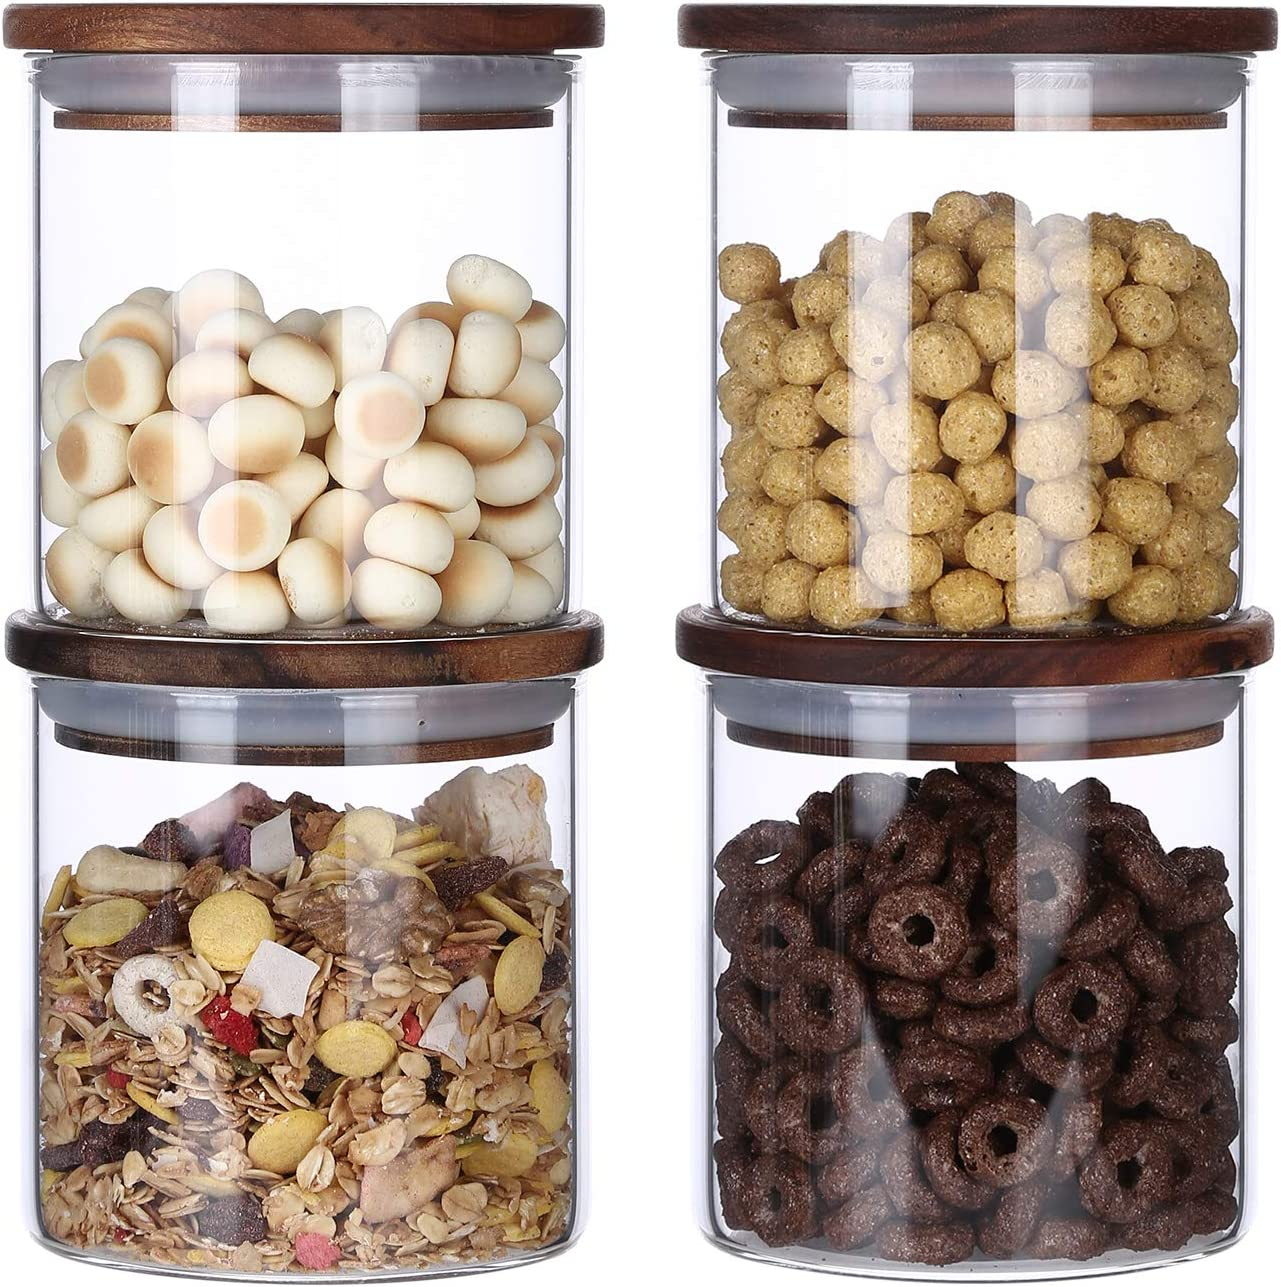 KKC Borosilicate Glass Storage Jars Airtight Max 52% OFF Wood Glas Free shipping anywhere in the nation Lids with